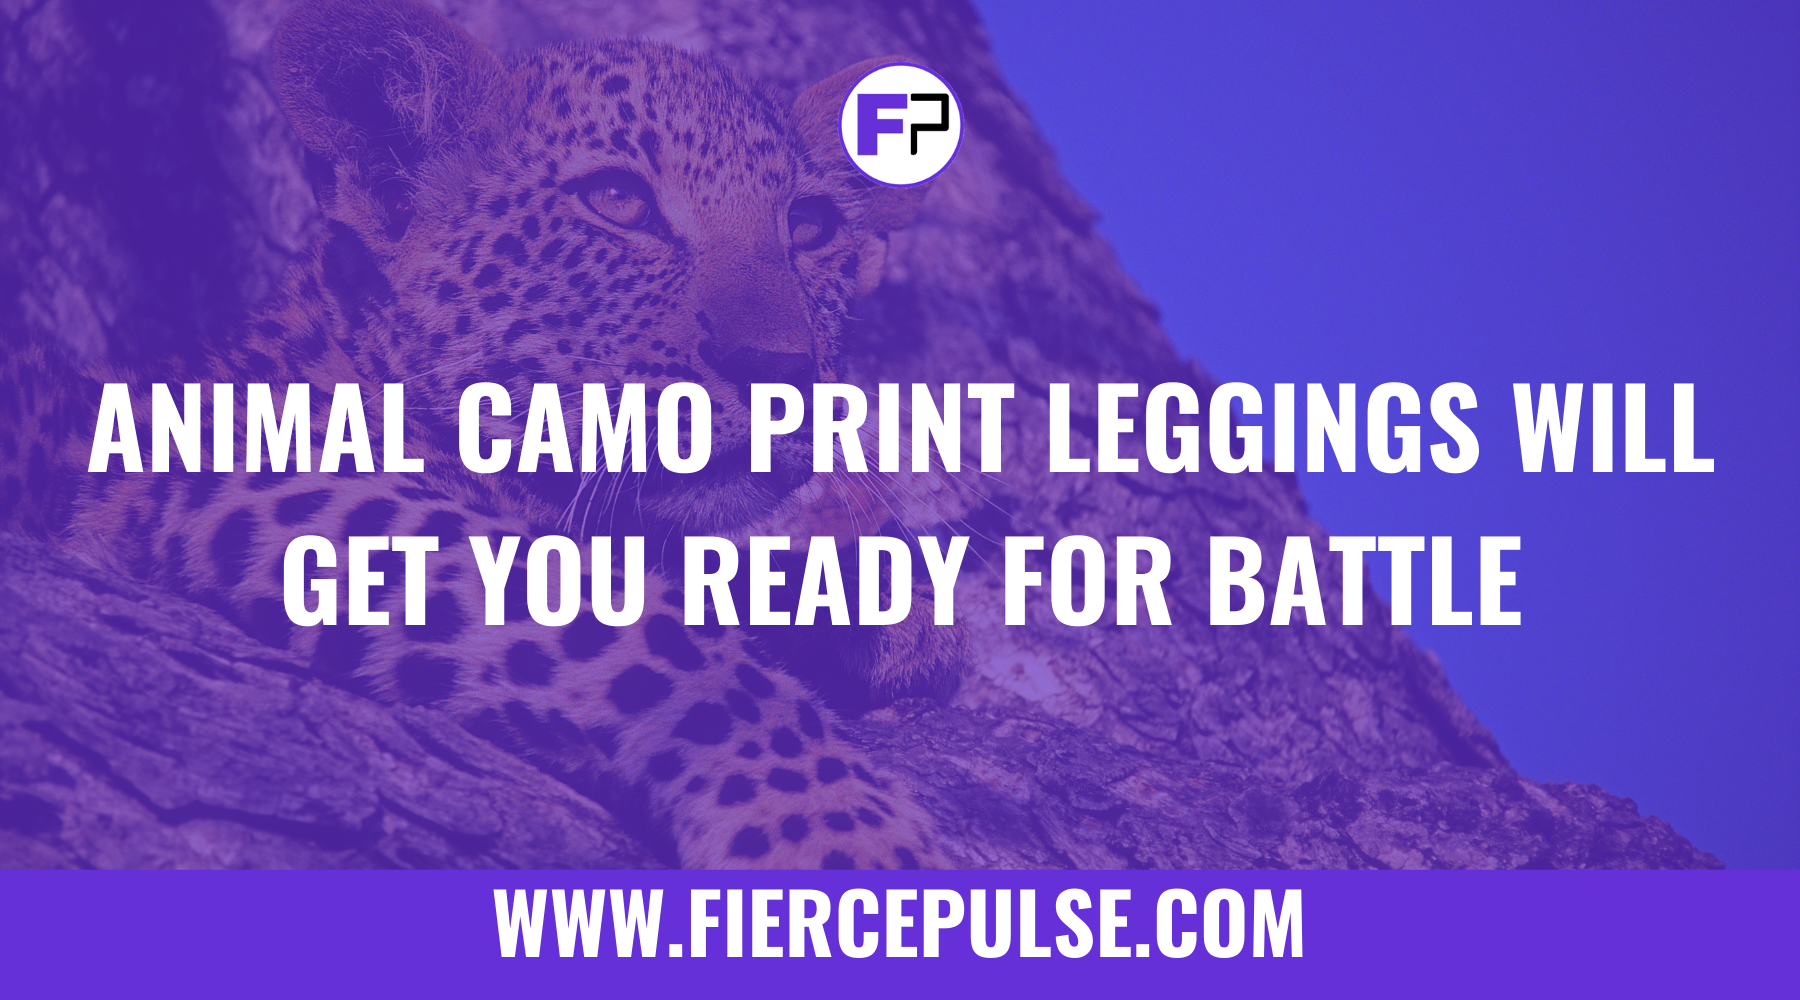 Animal Camo Print Leggings Will Get You Ready for Battle